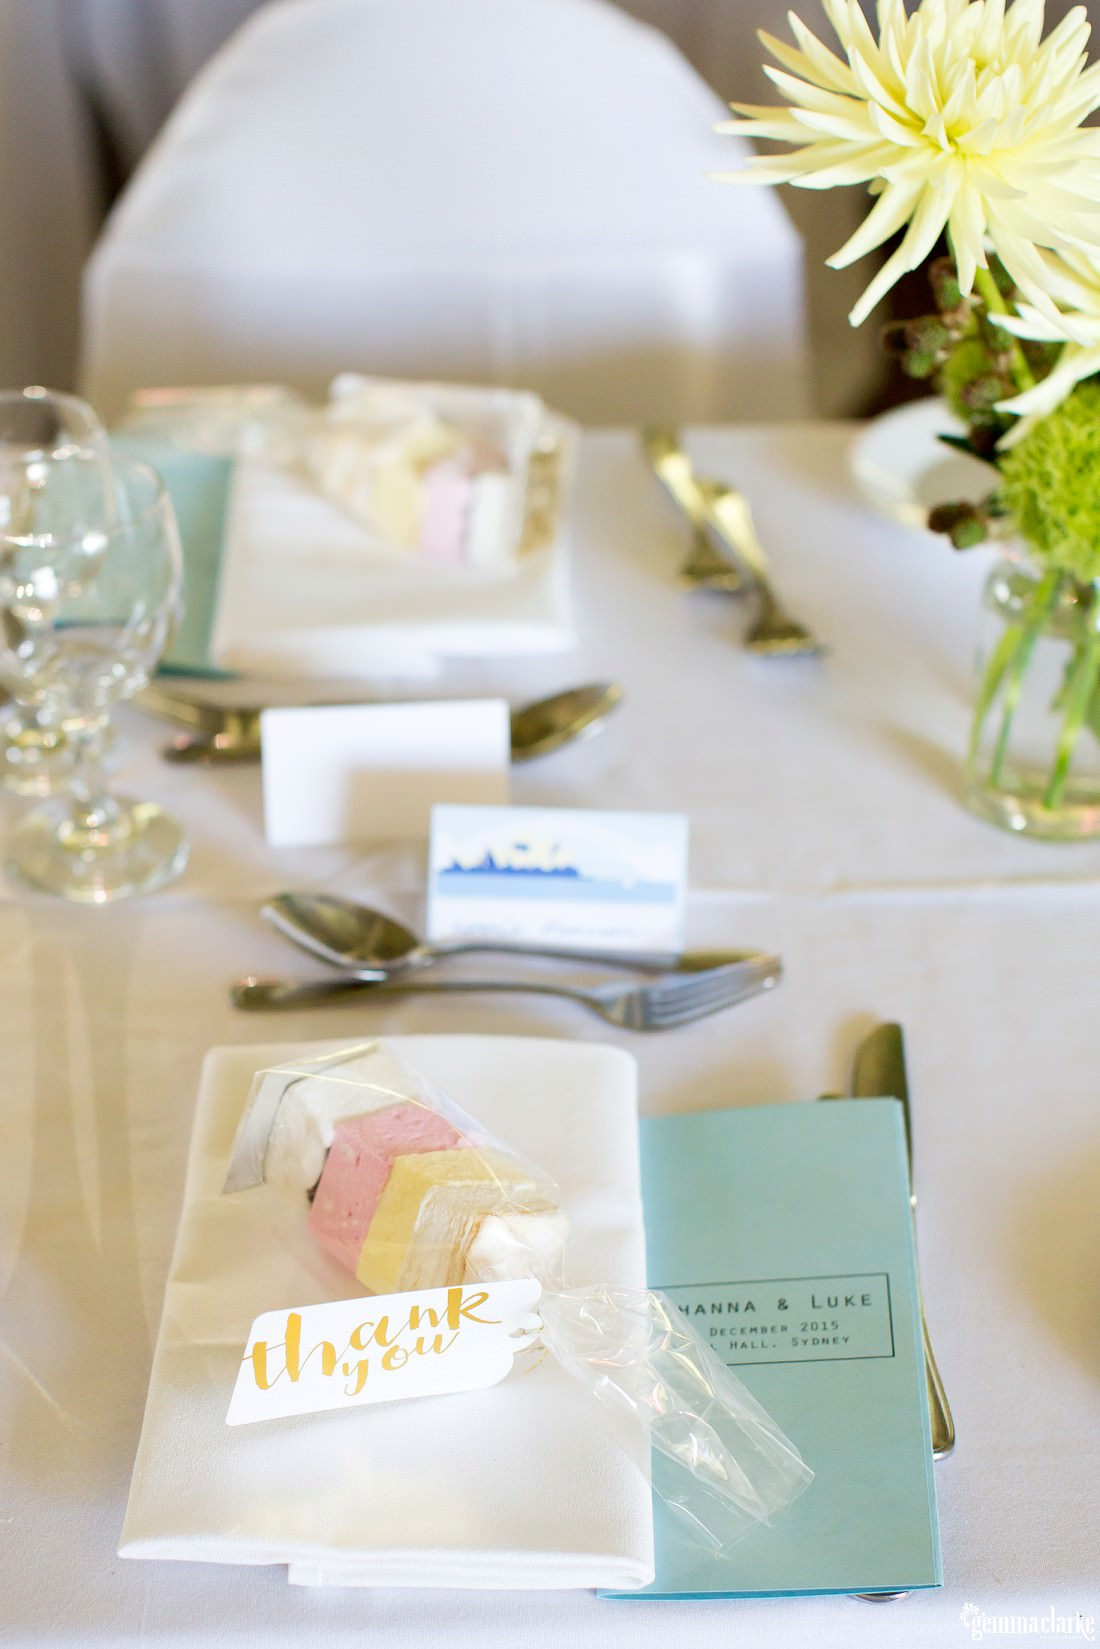 Table settings with a thank you gift at a wedding reception